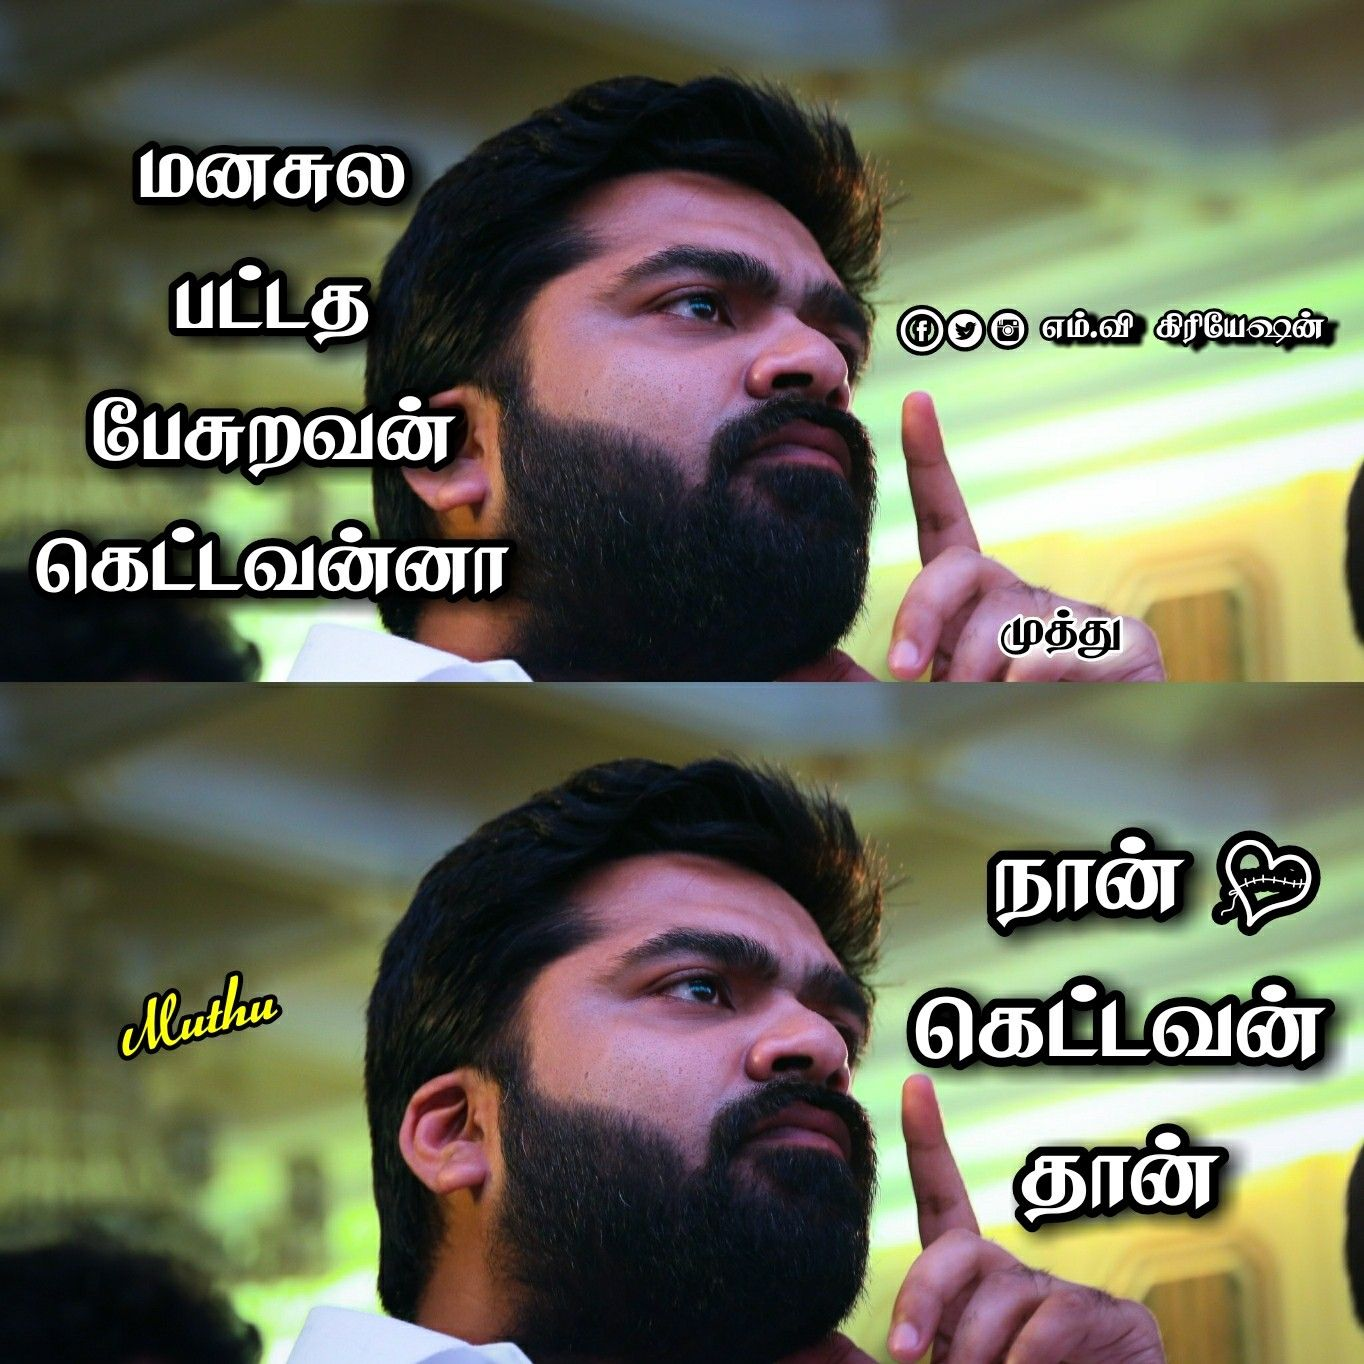 Q8 Str Situation Quotes Actor Quotes Brother Sister Quotes